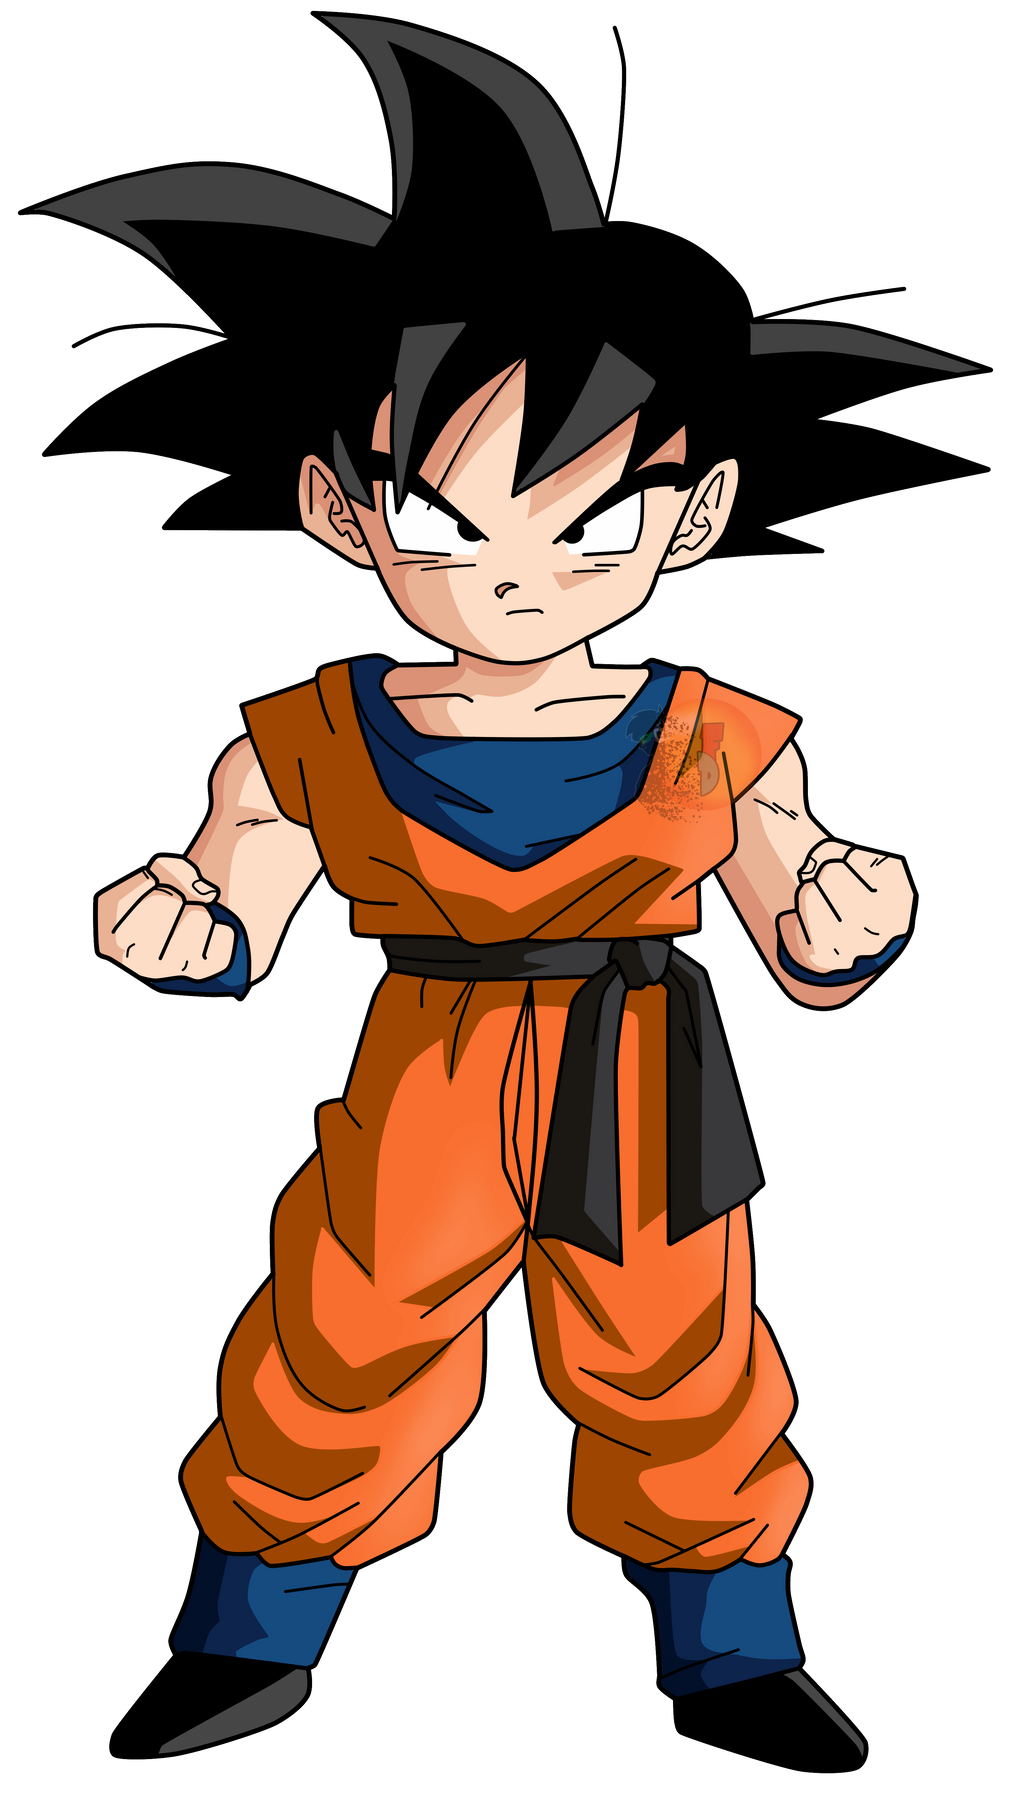 trunks wallpaper dragon ball z